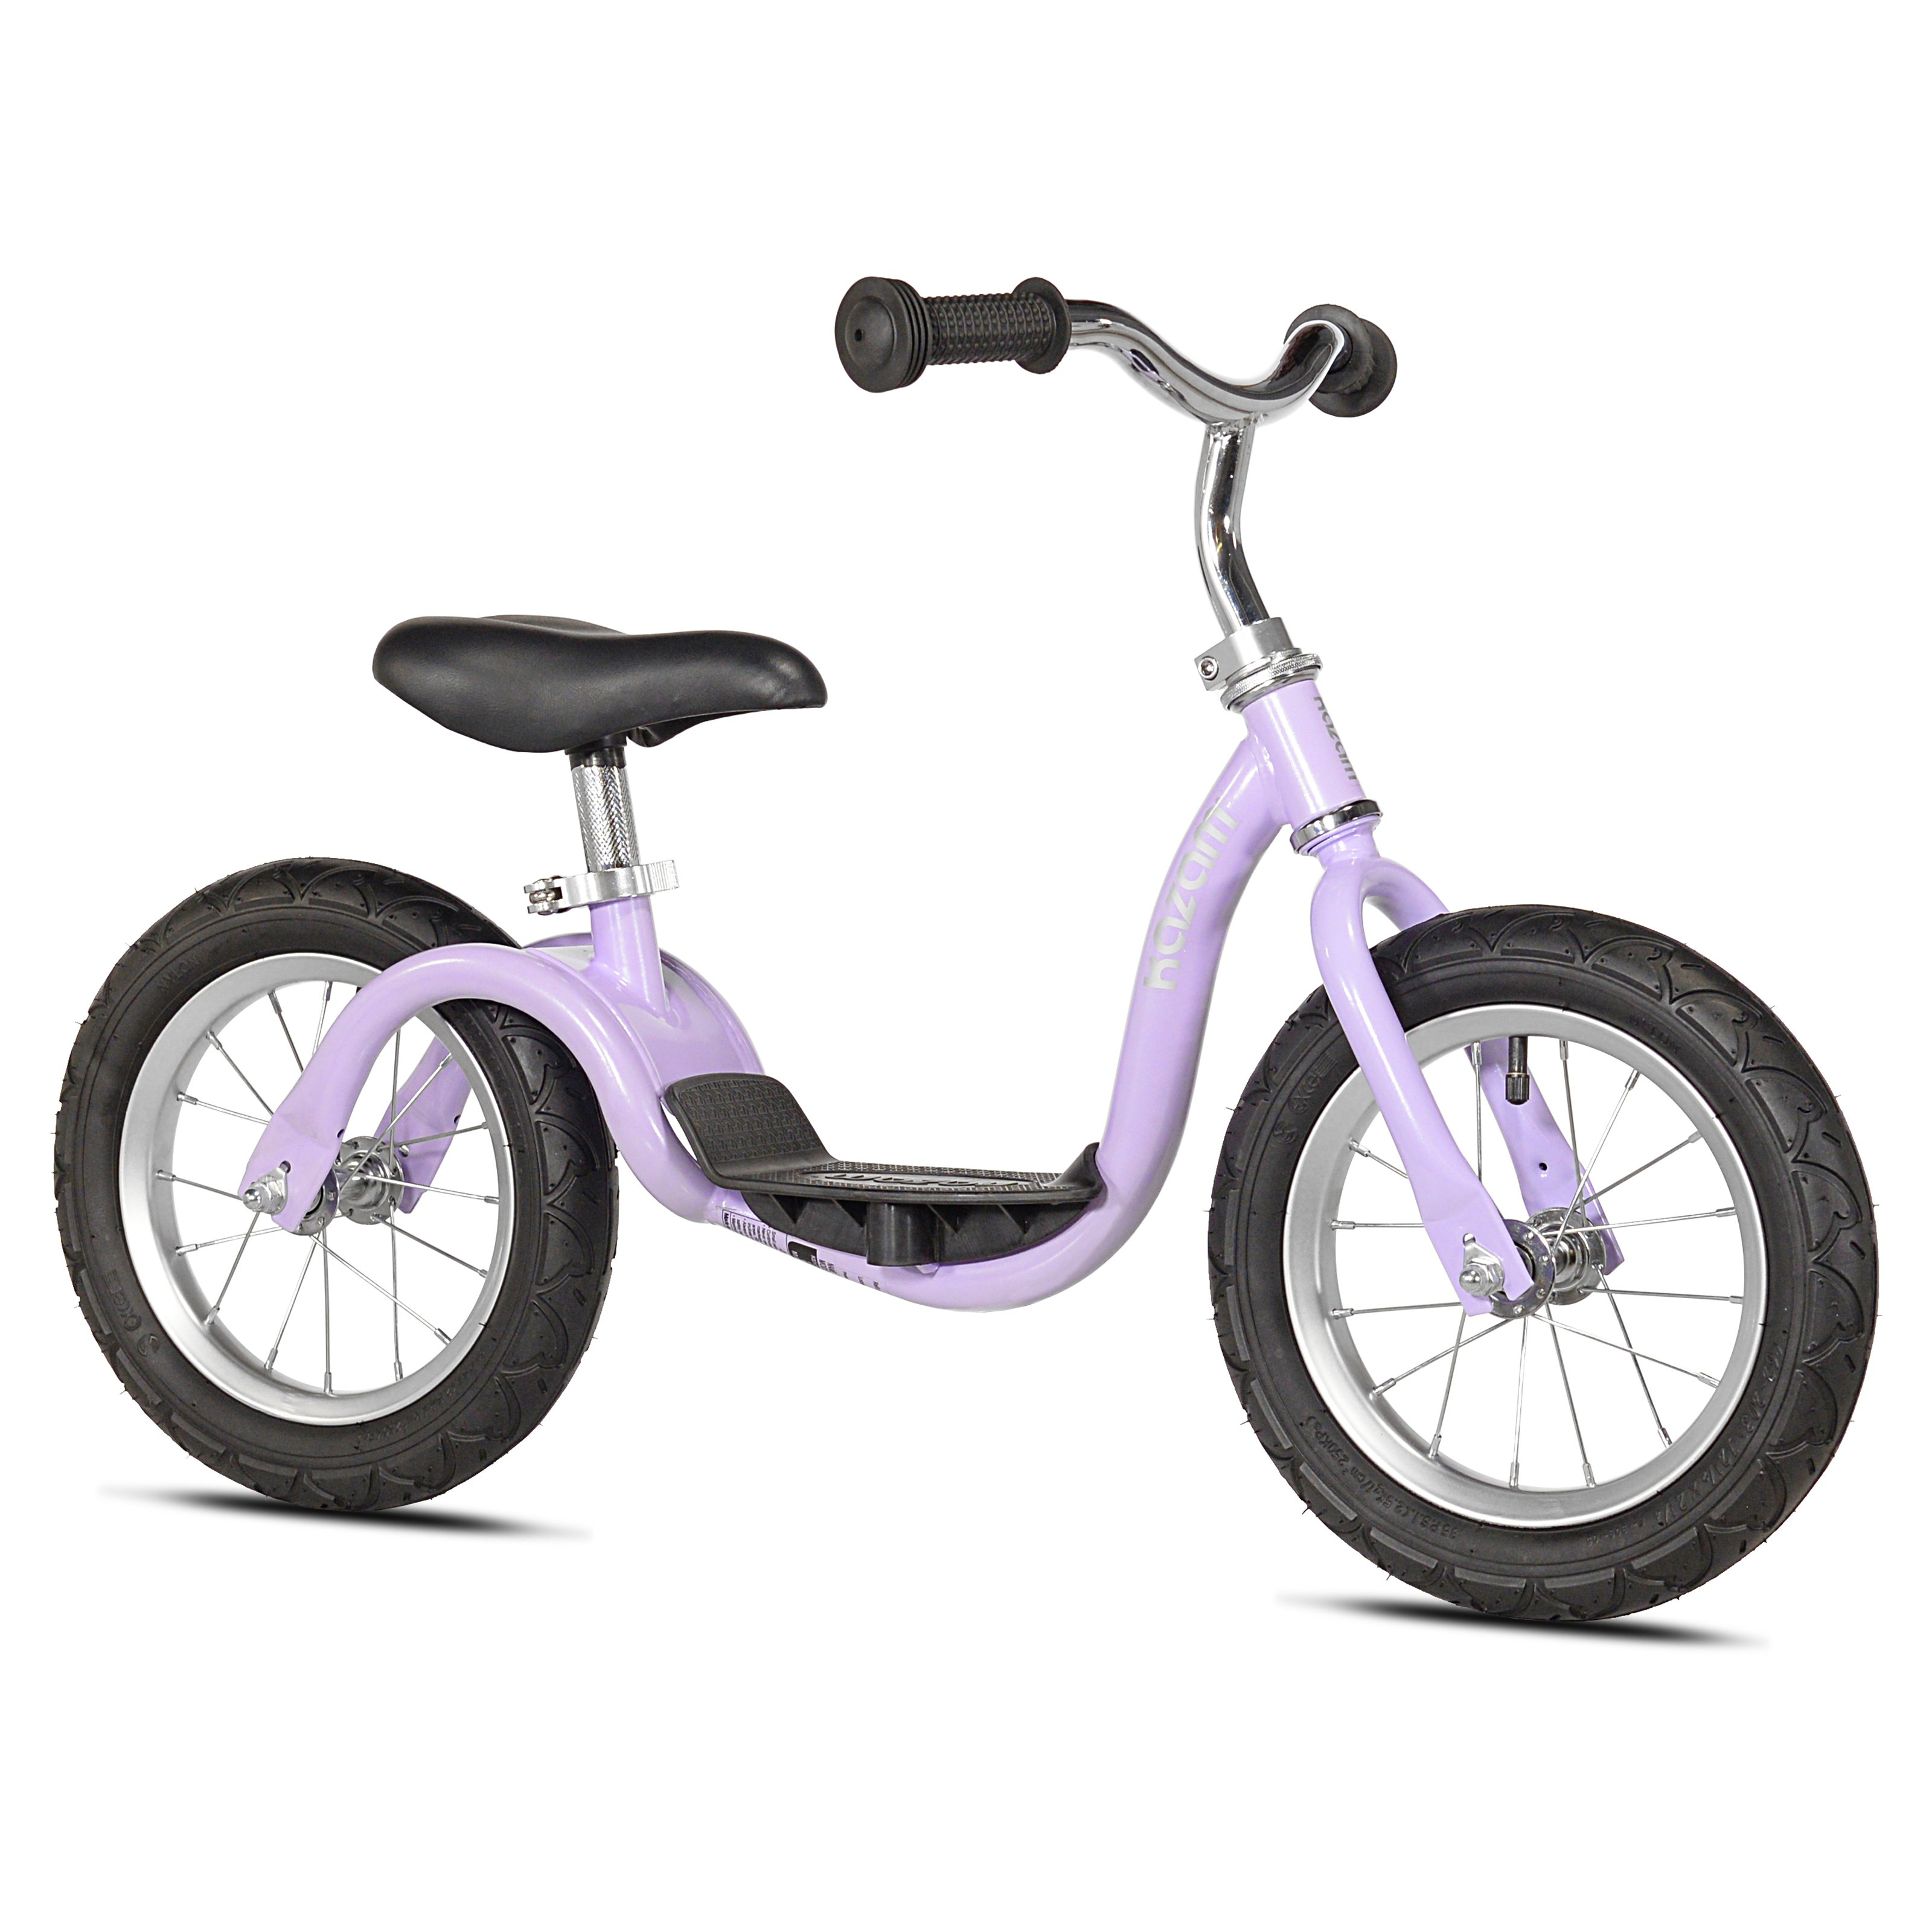 Kazam 12 in. V2S Balance Bike